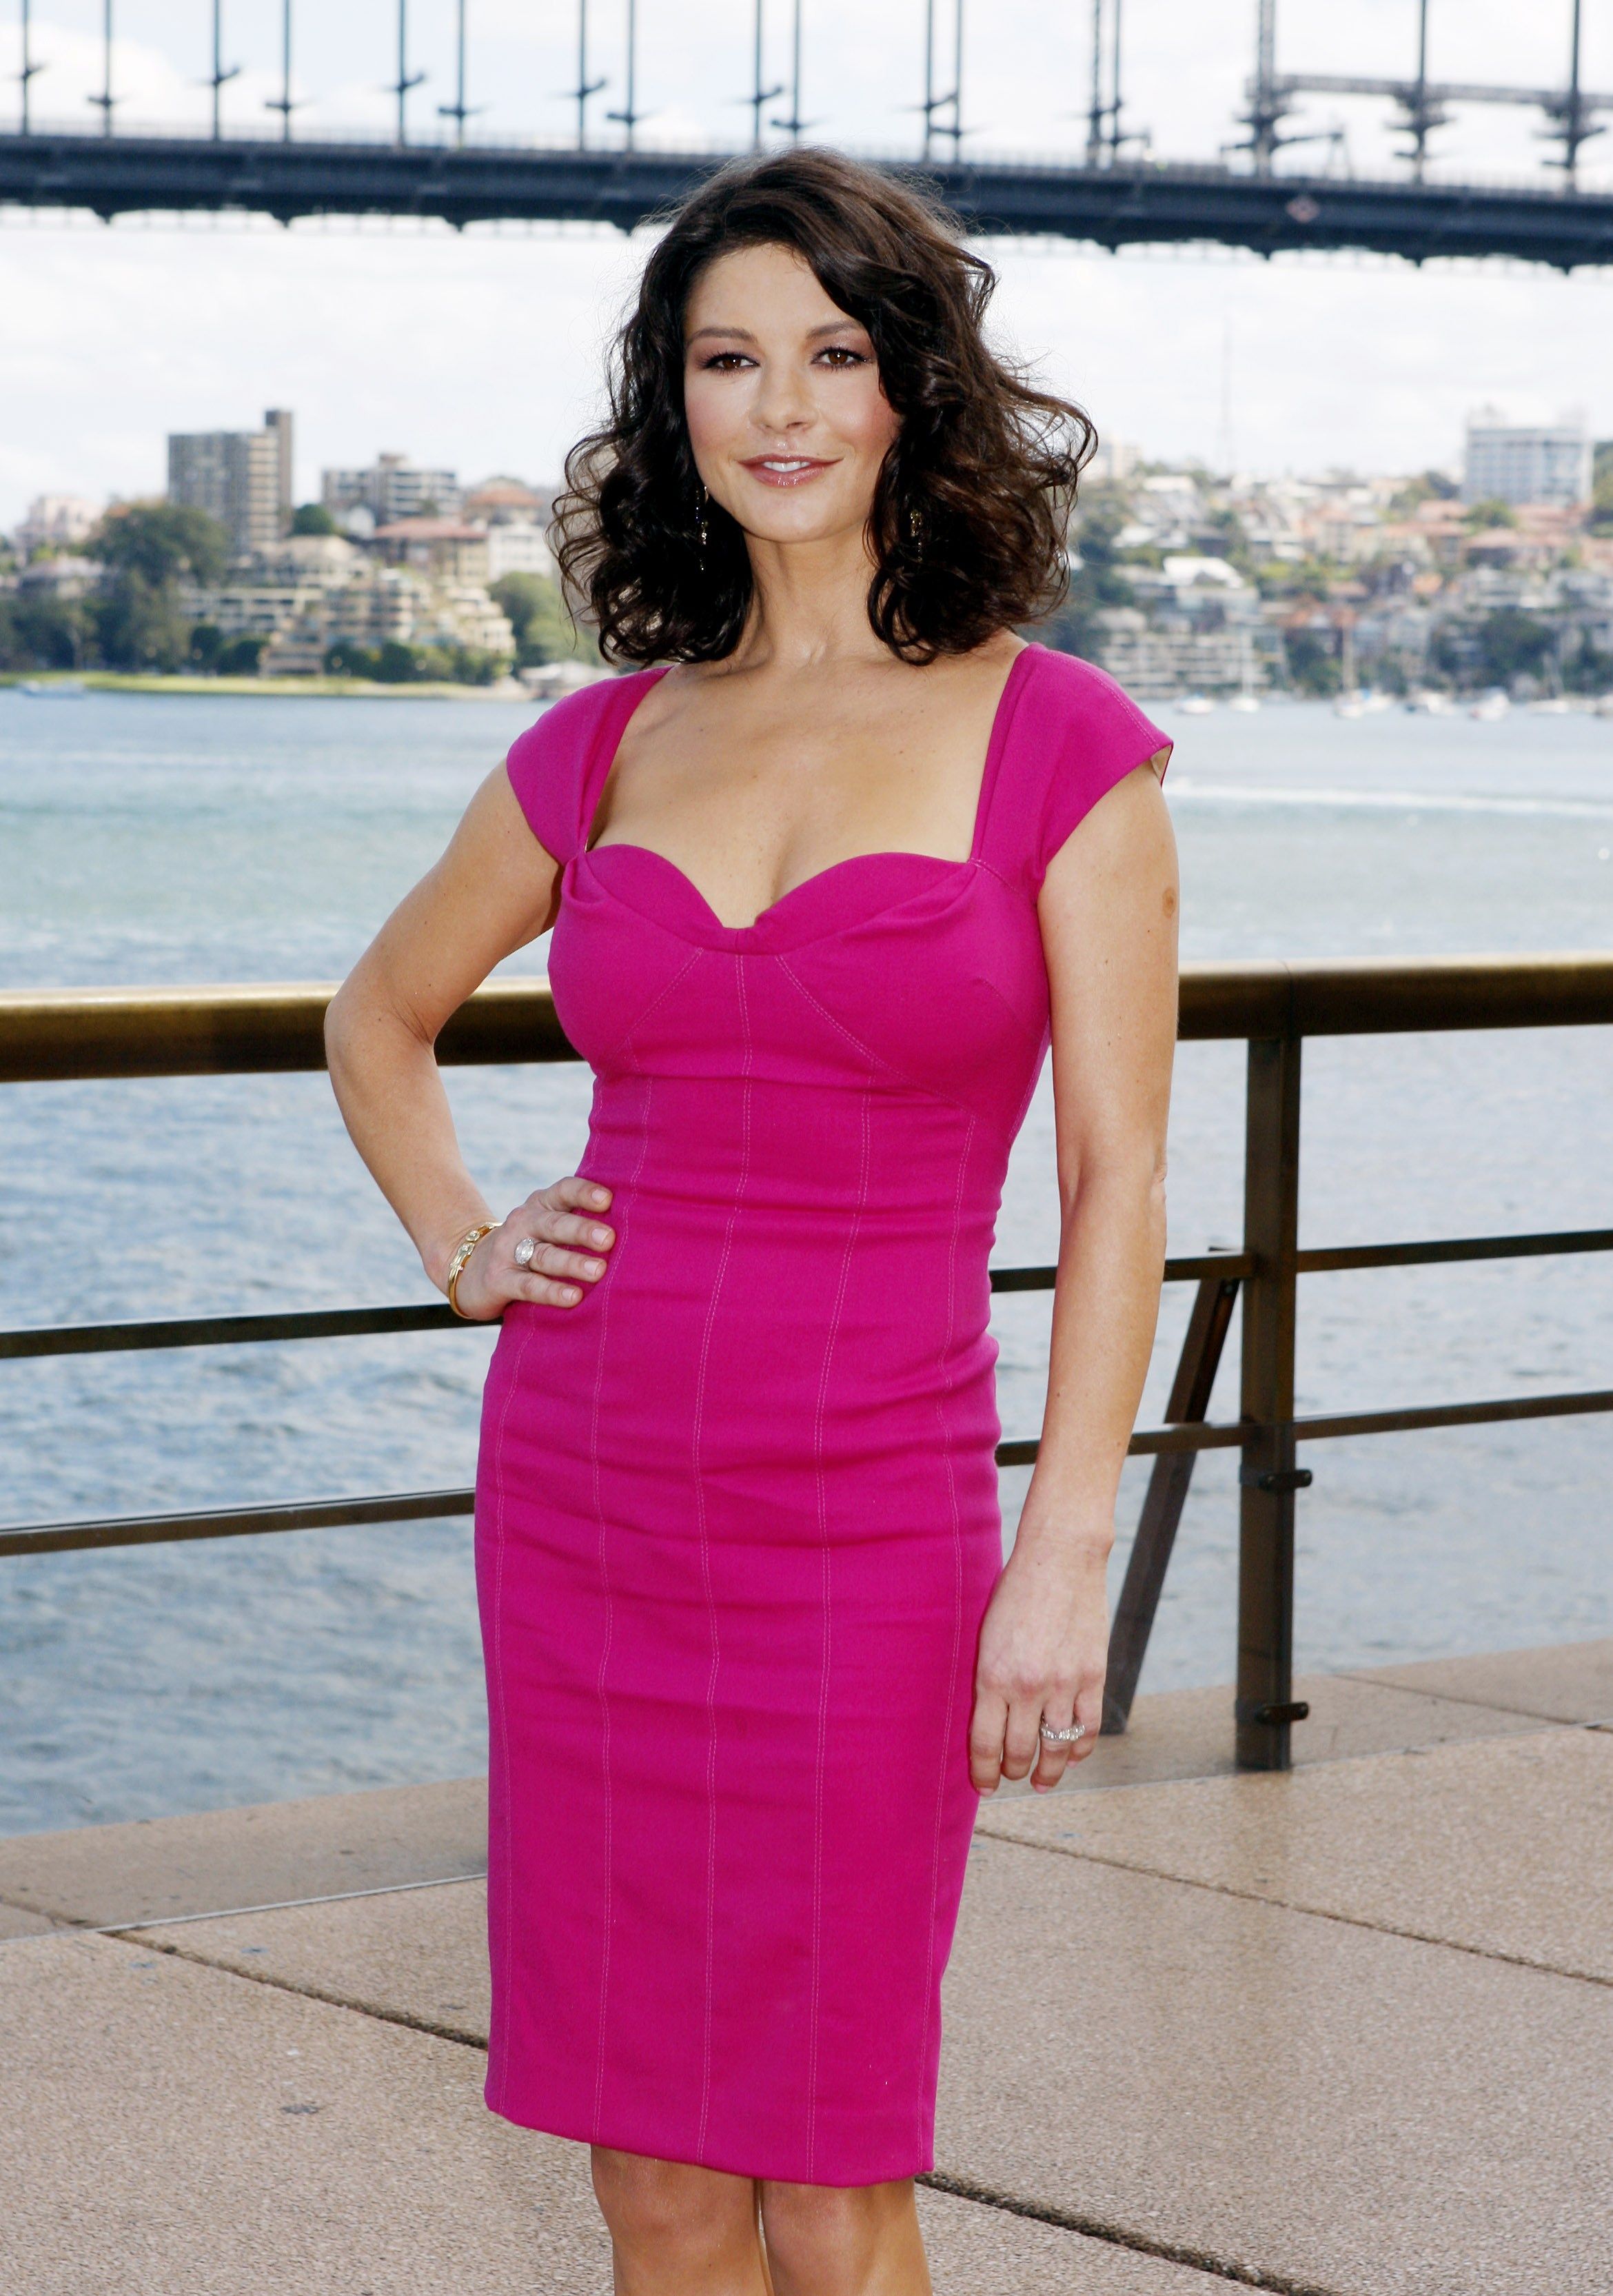 Catherine Zeta Jones | 01-05-2017 | Pinterest | Catherine zeta jones ...